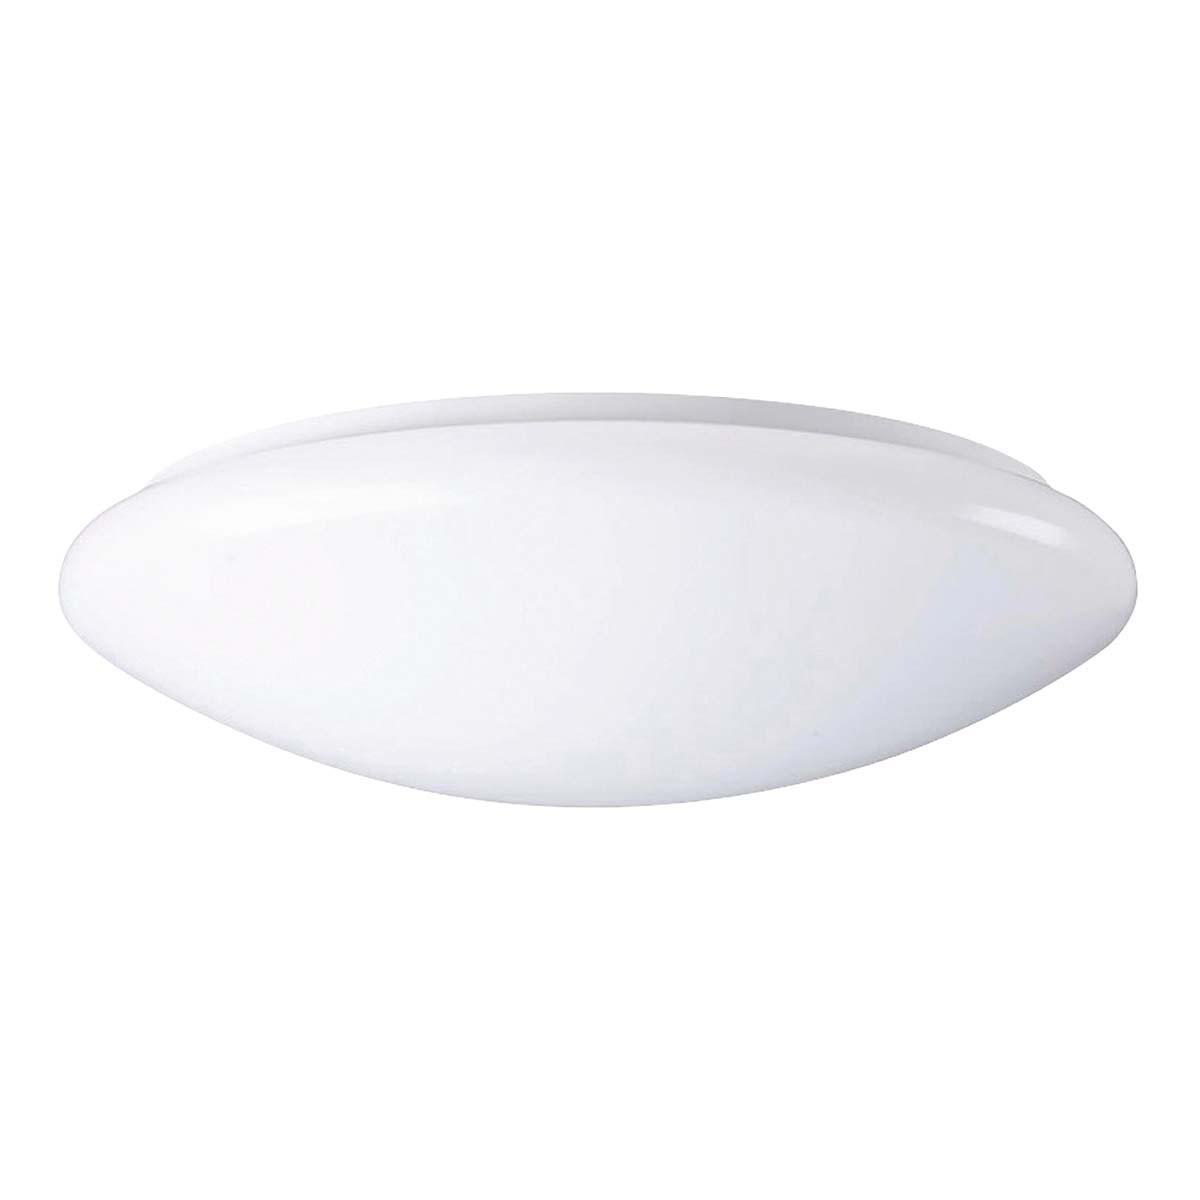 Sylvania Sylround Superia LED-Downlight - 15 W, 195 mm